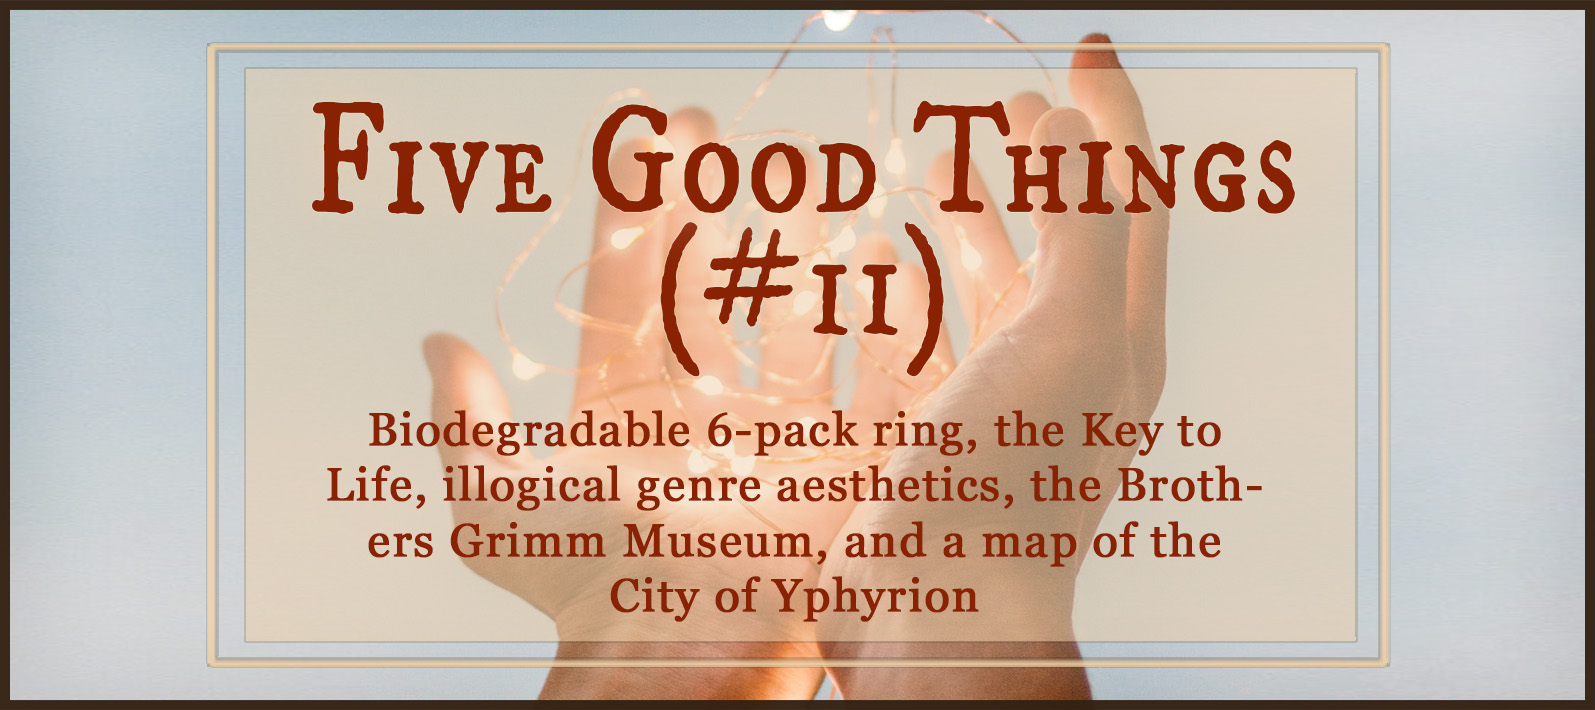 Five Good Things #11 (Amazing People Doing Amazing Things) — Terrible, trying things happen, sure, but among all the tears and terror, there are beautiful things going on. Check out these amazing people using their noggins for good things! http://robinlythgoe.com